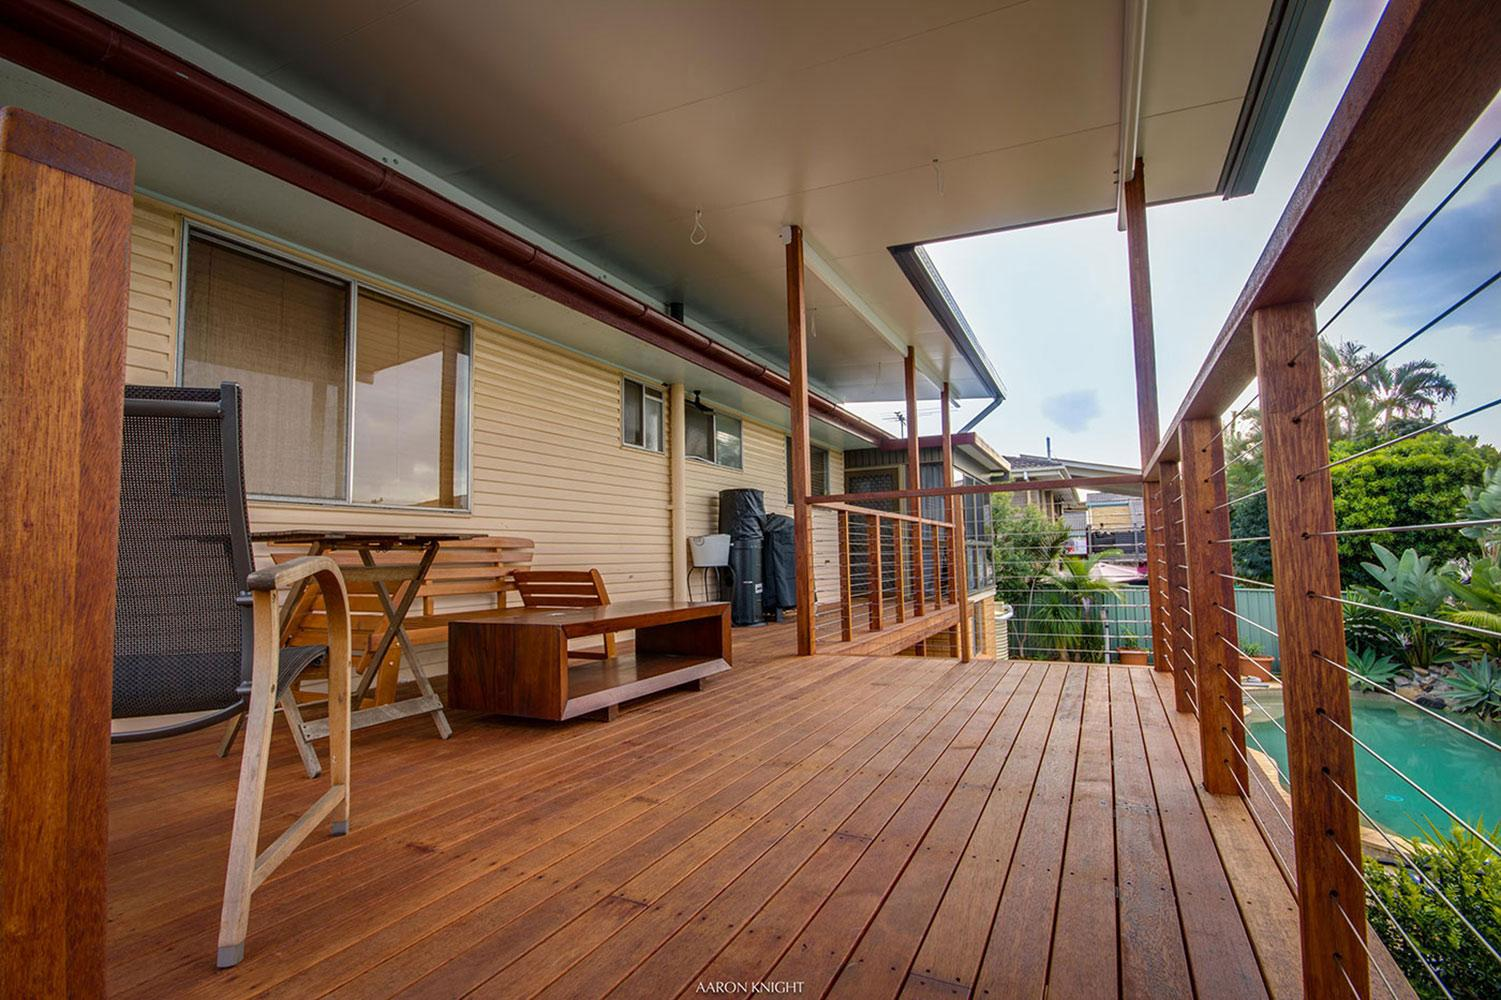 Flyover or Raised Patio Roof